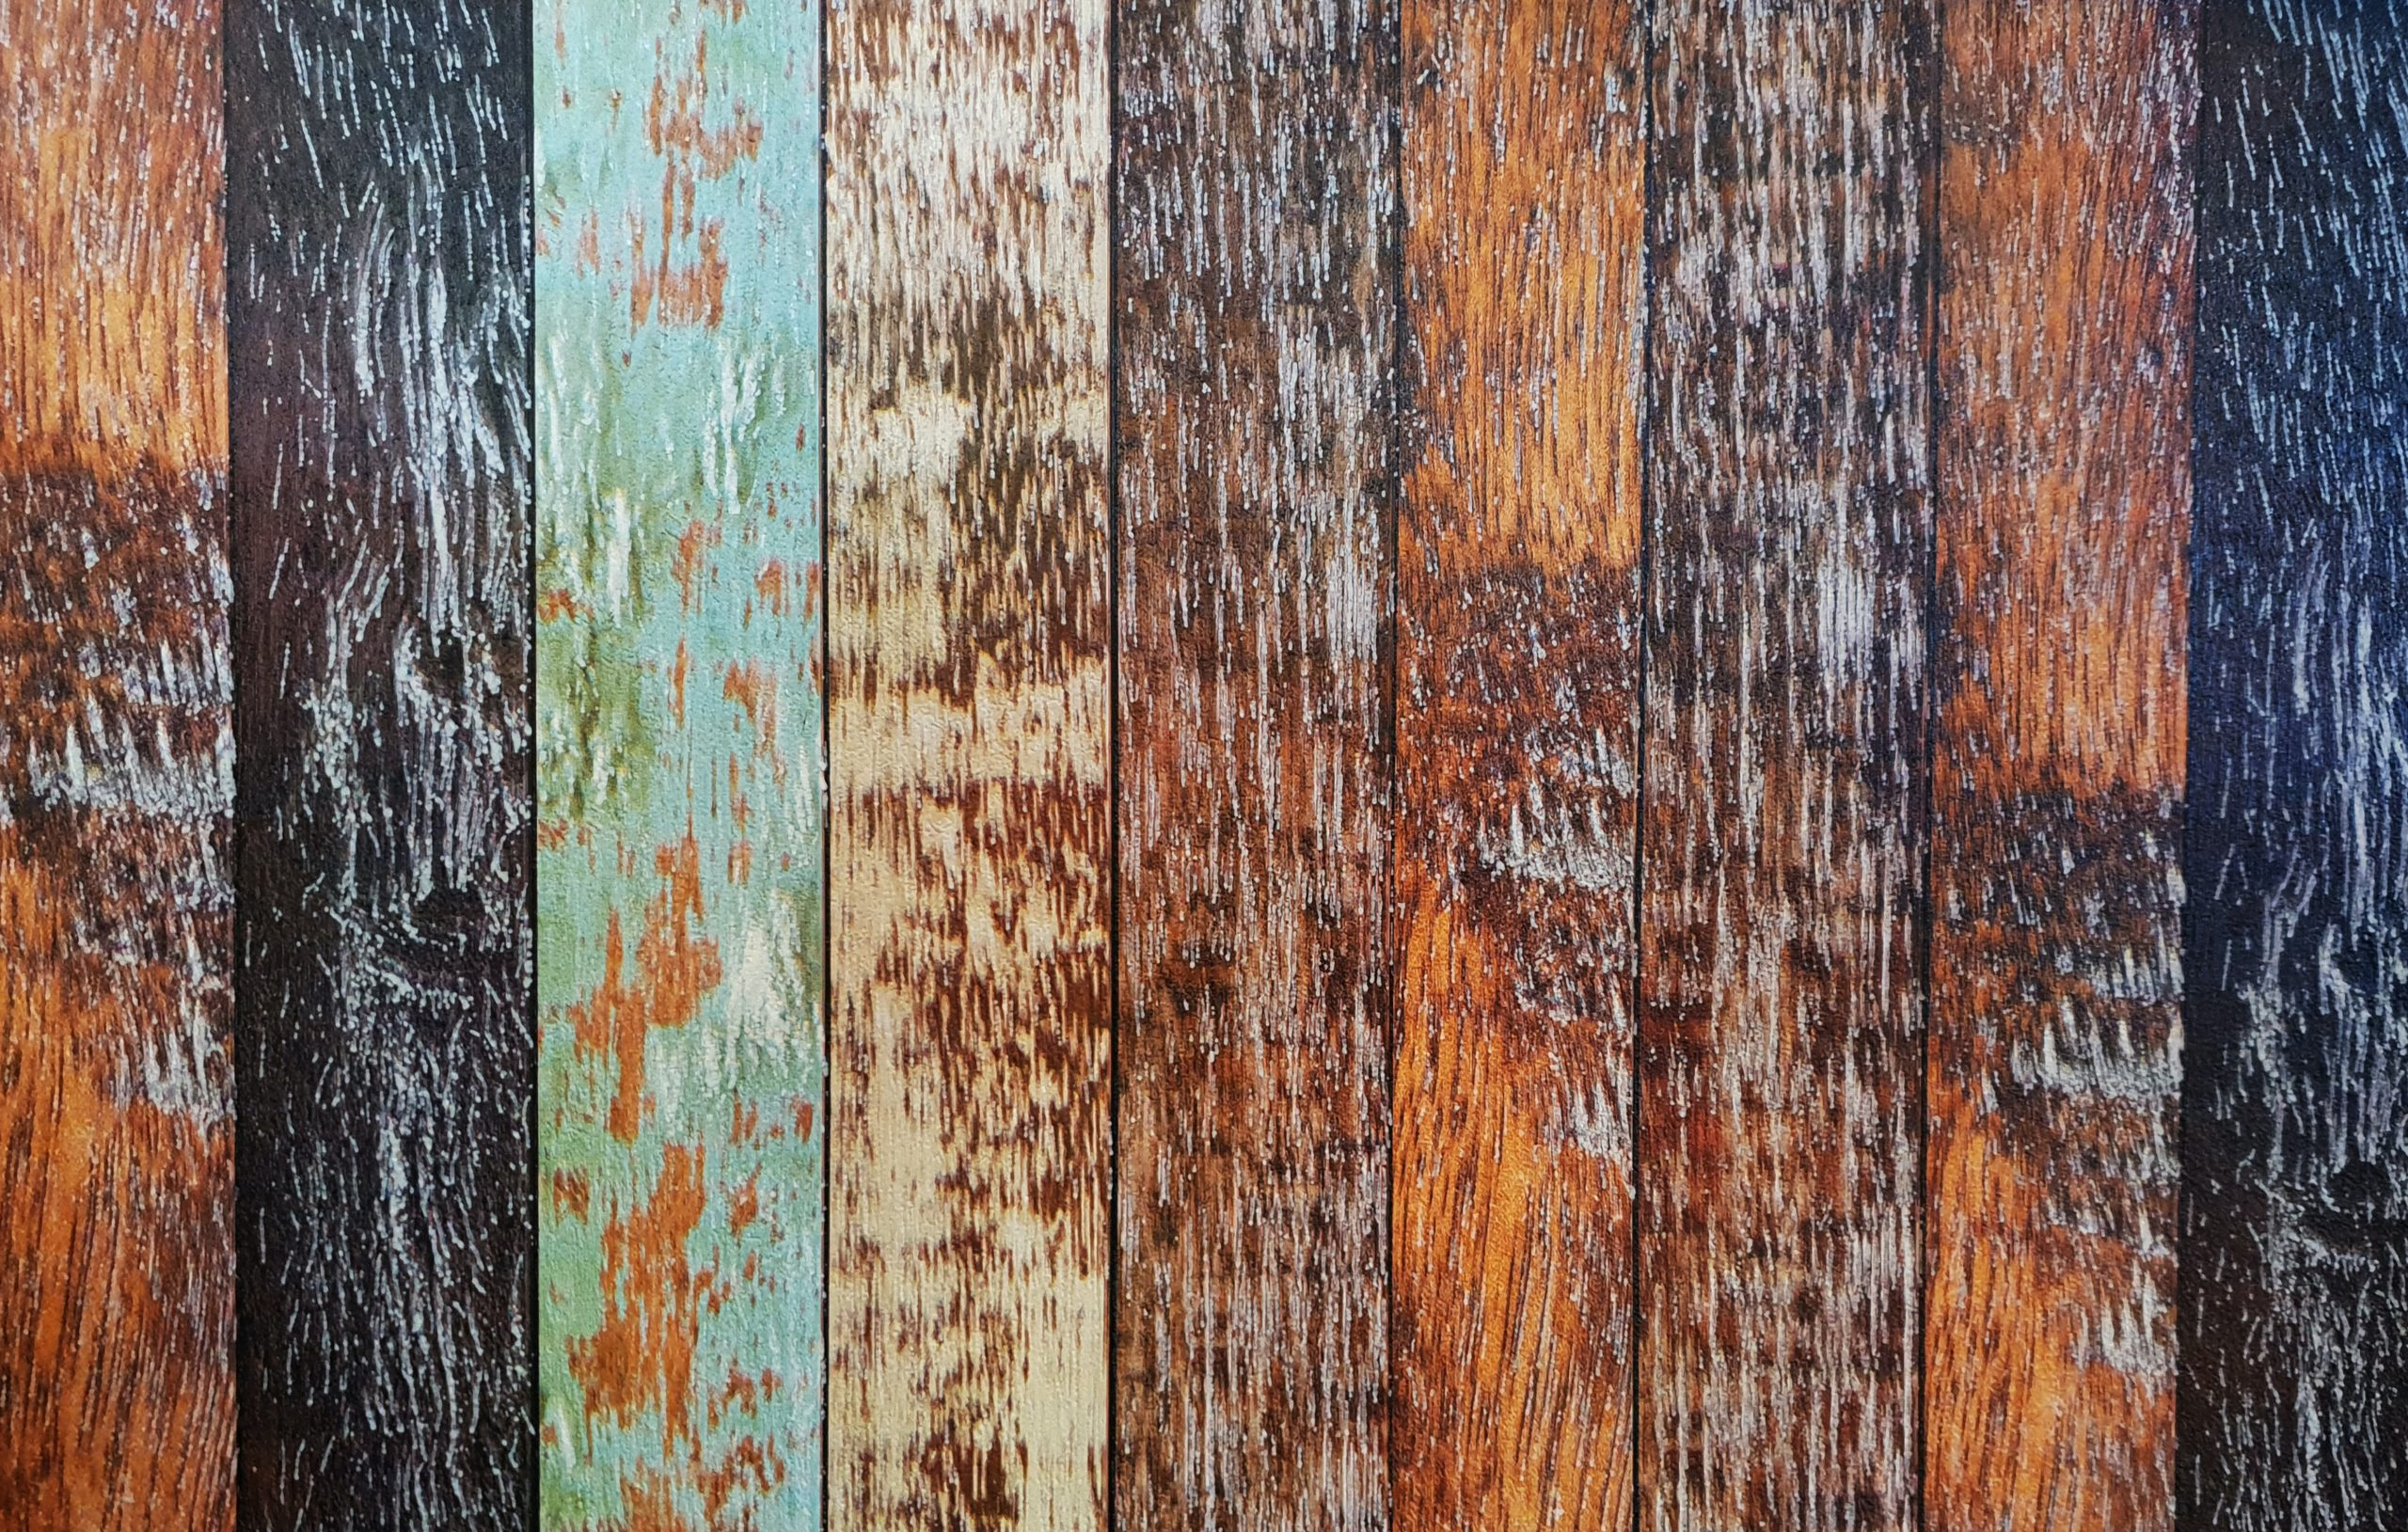 Worn down colored wood boards